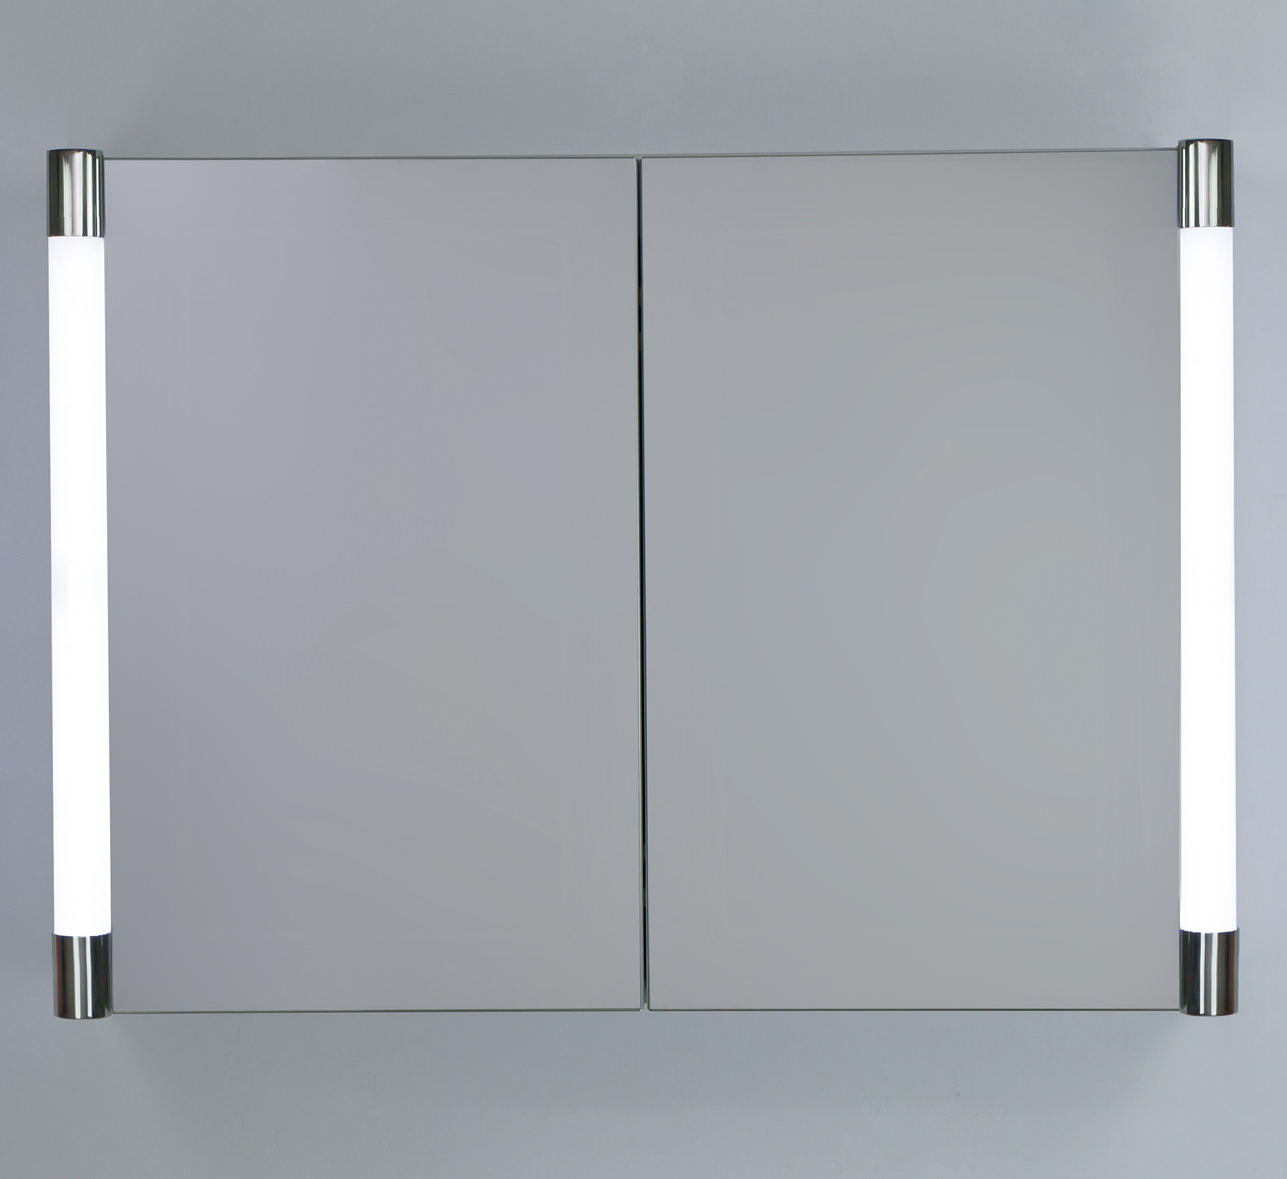 RAK Verona Double Door LED Illuminated Mirrored Cabinet 700 X 500mm